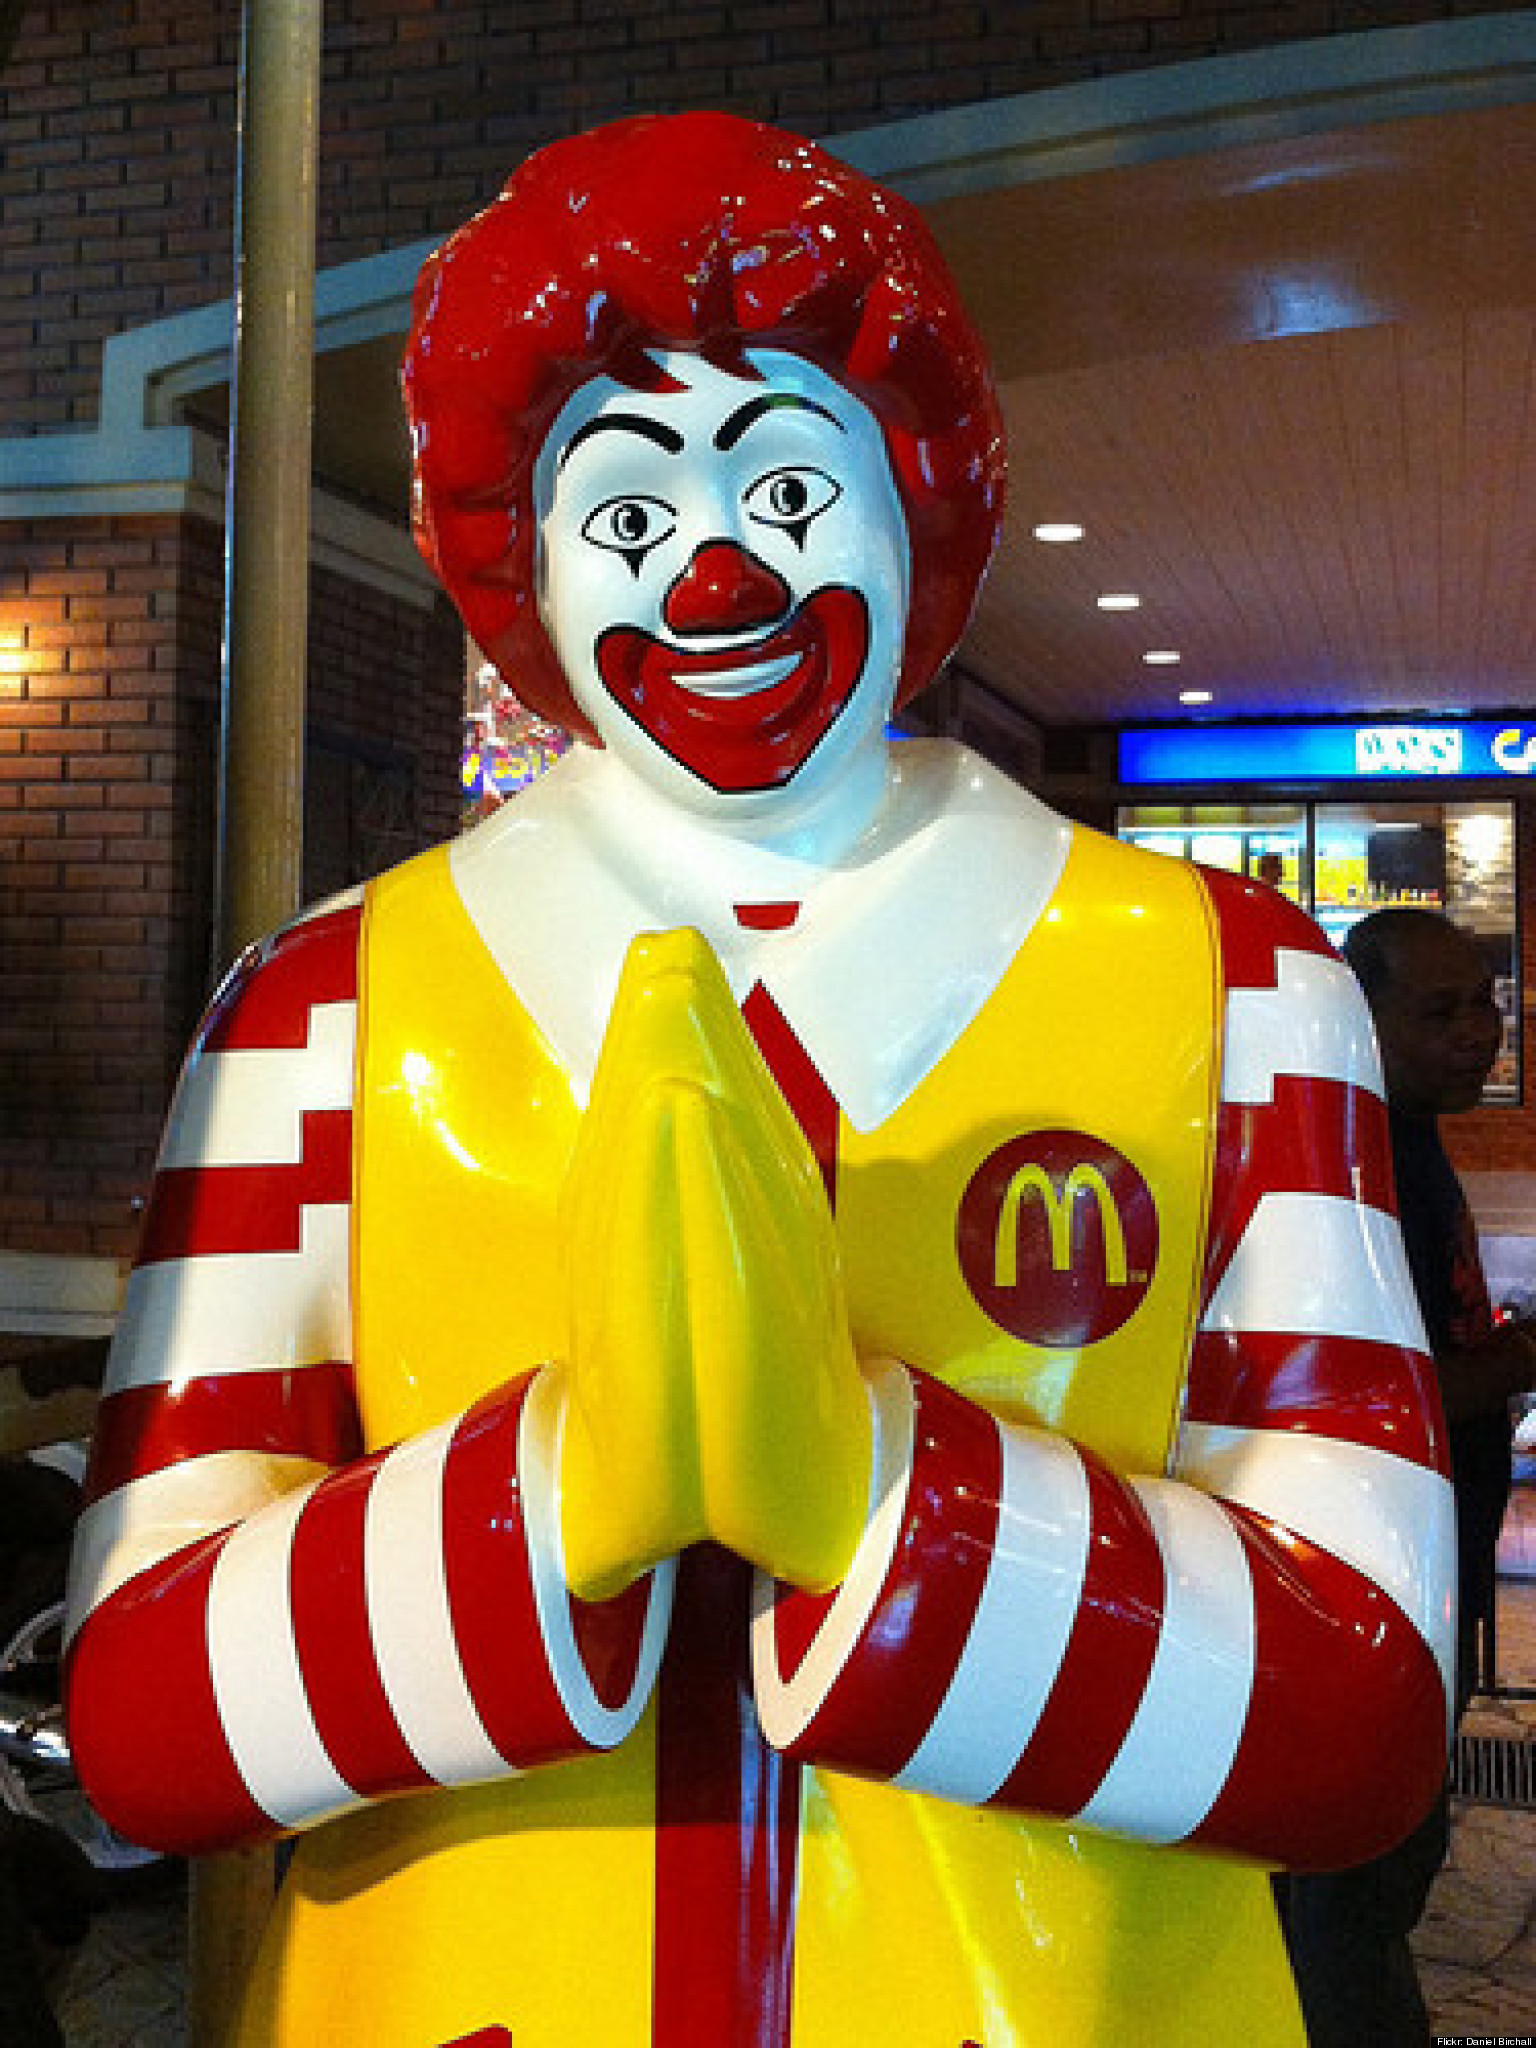 Mcdonald 39 s pushes stores to stay open on christmas huffpost for Fast food places open on easter sunday